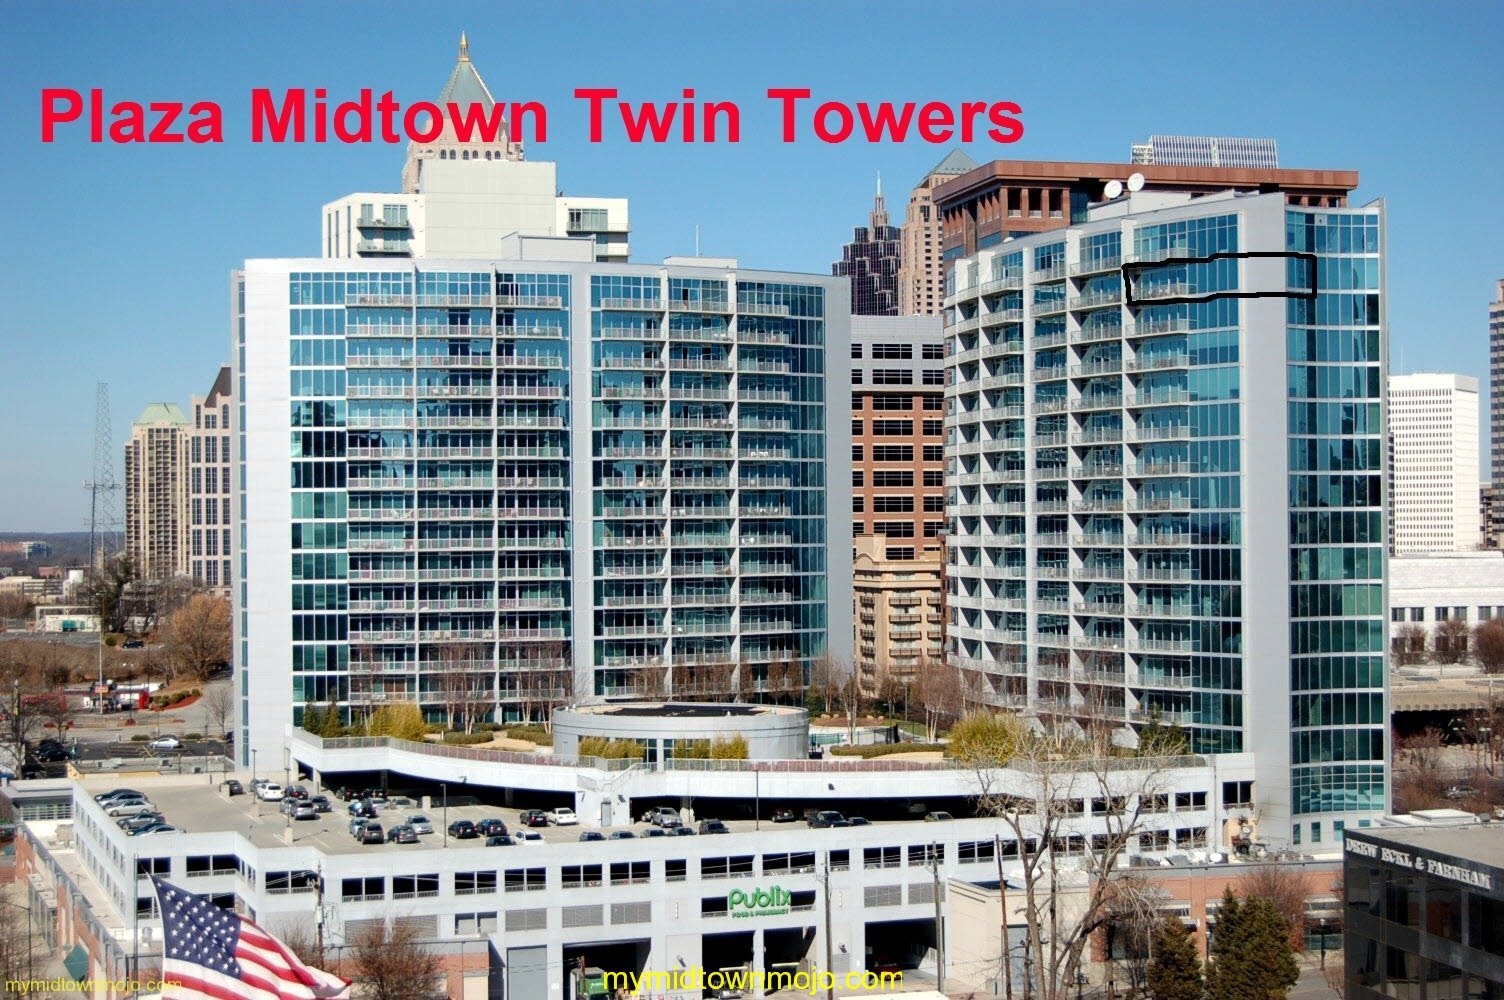 plaza-midtown-twin-towers